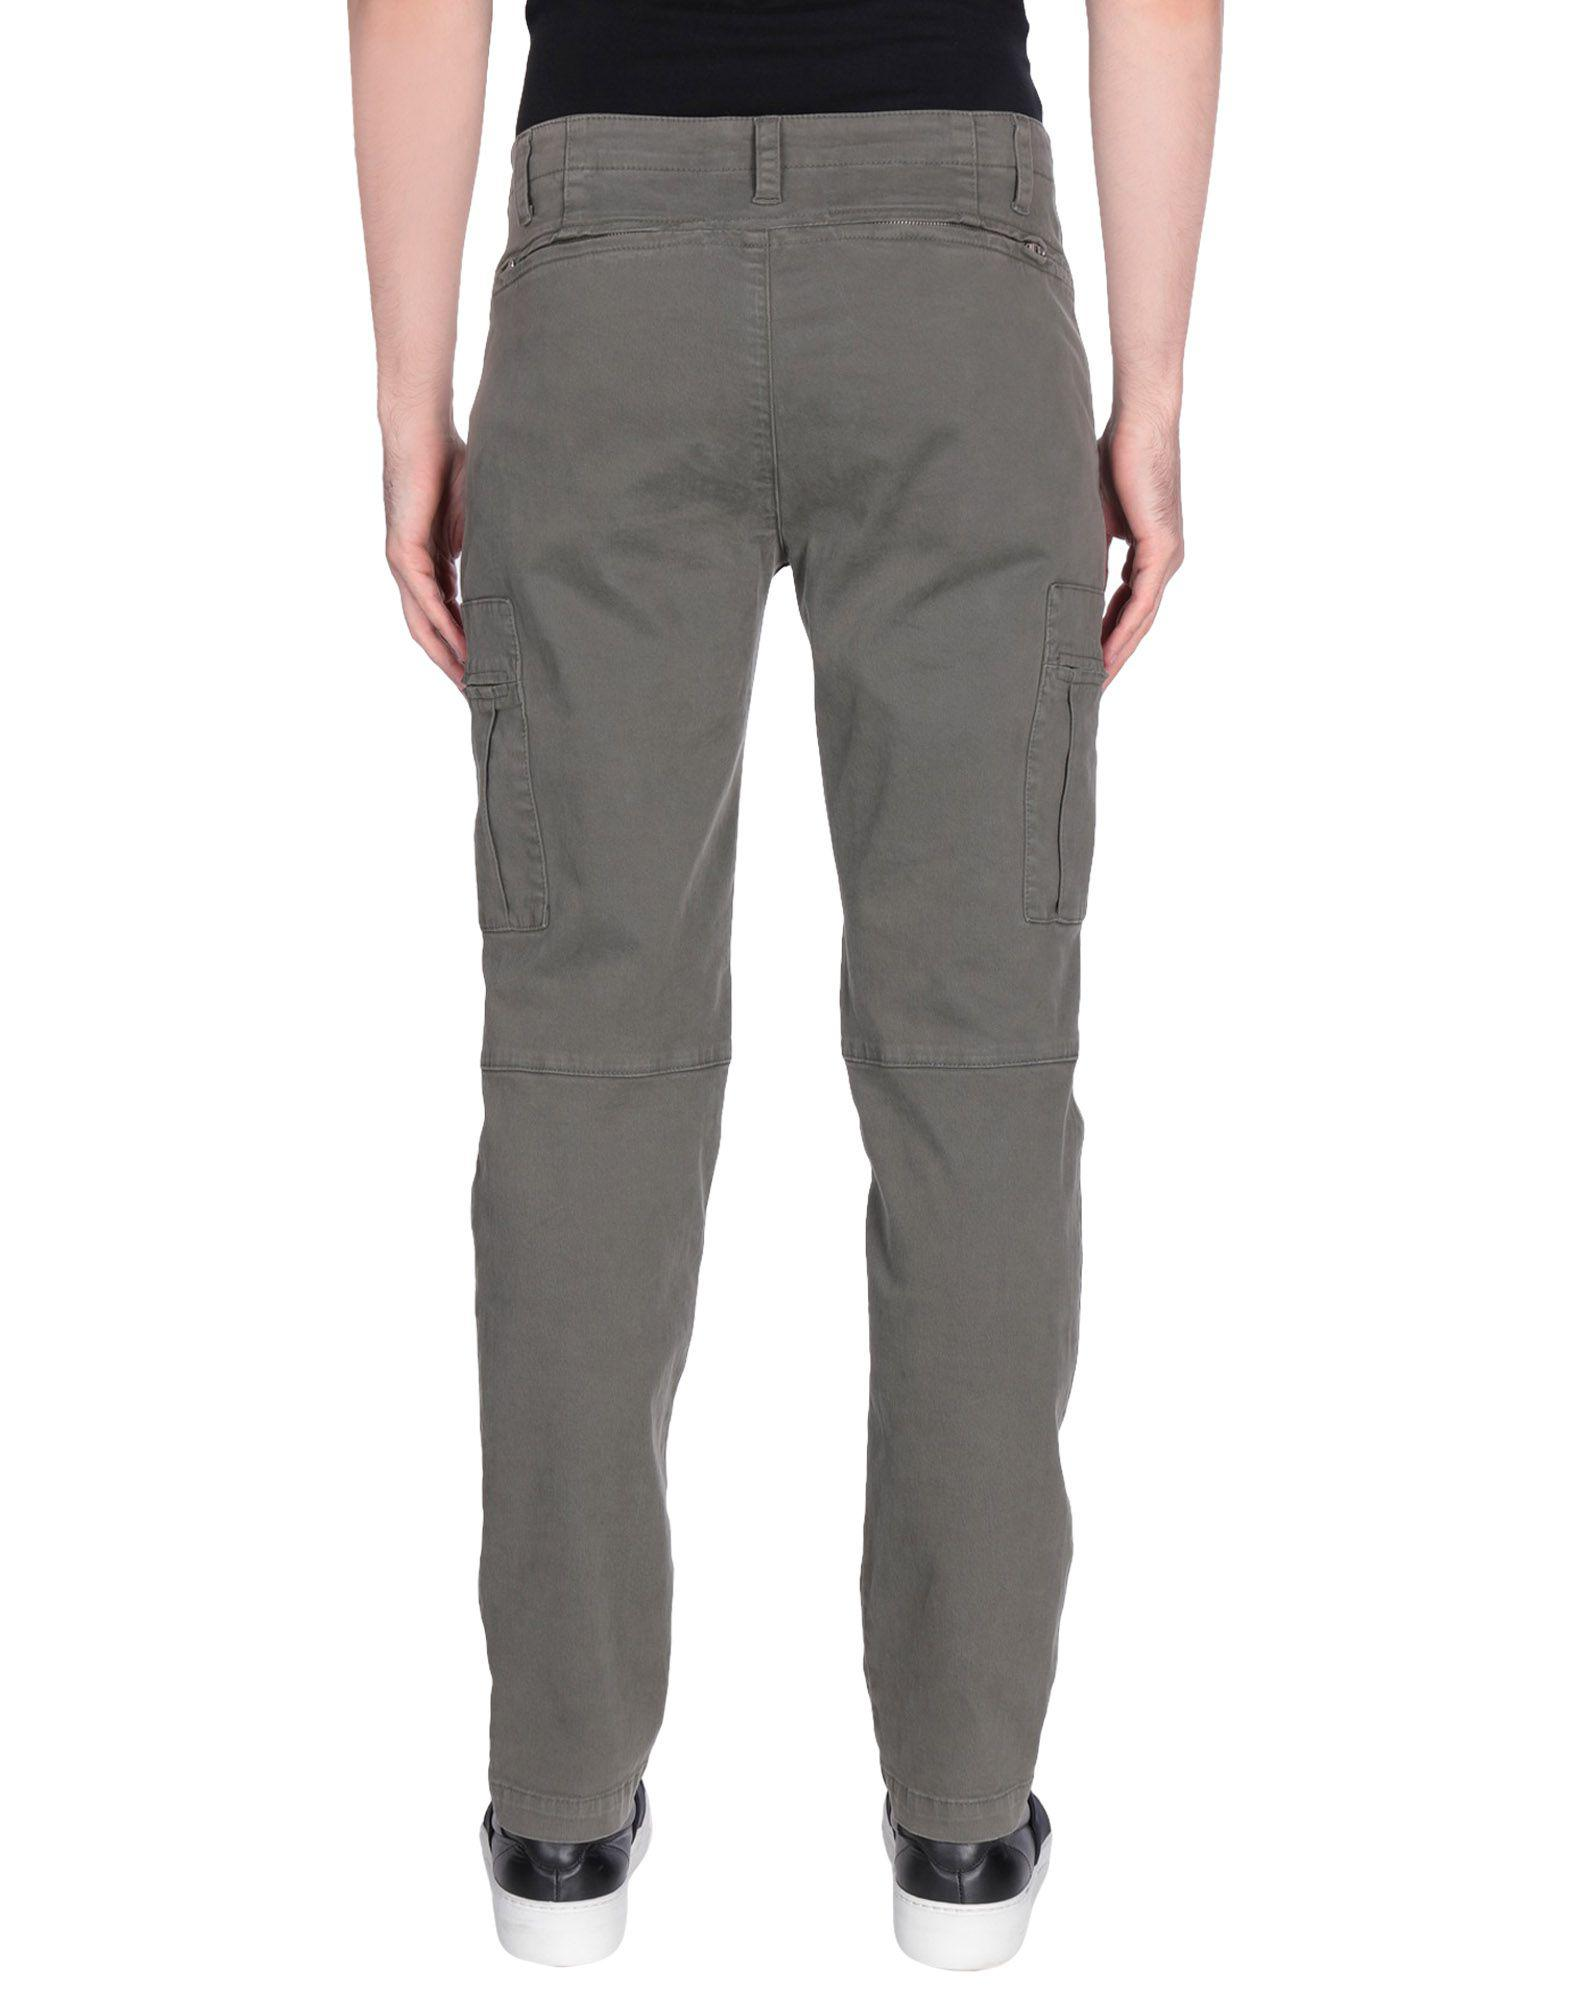 MSGM Cotton Casual Trouser in Military Green (Grey) for Men